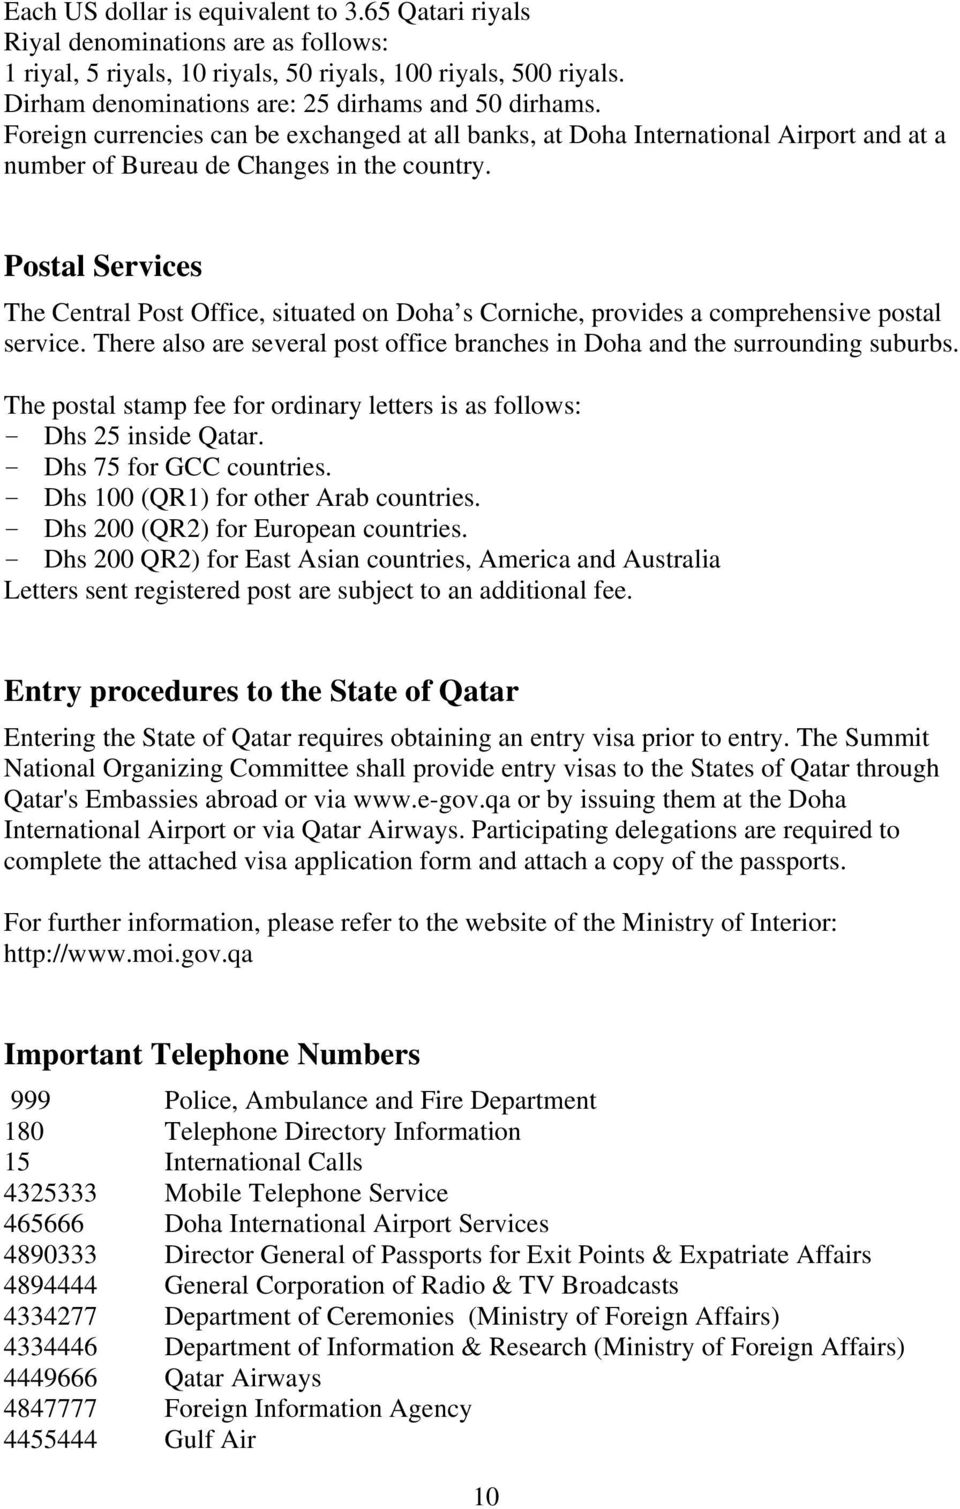 INDEX I  GENERAL INFORMATION ABOUT THE STATE OF QATAR (2